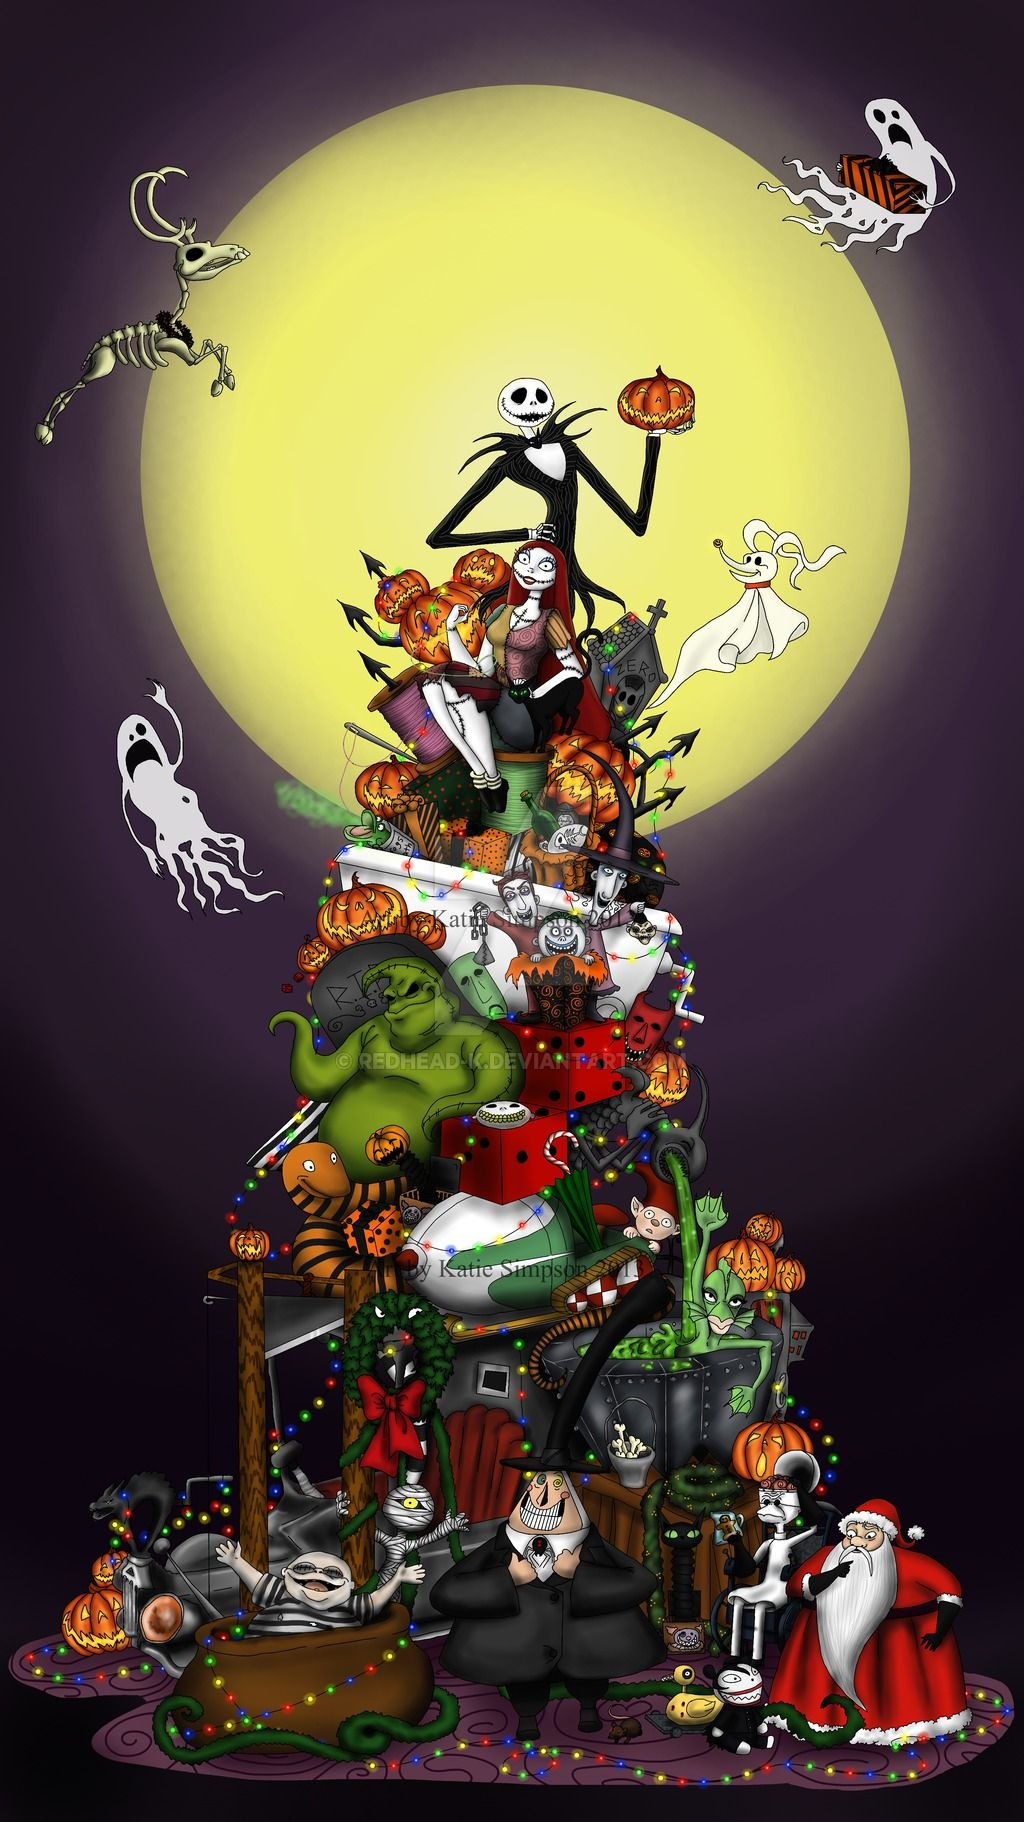 Happy 20th Anniversary Tnbc By Redhead K Nightmare Before Christmas Wallpaper Nightmare Before Christmas Tattoo Nightmare Before Christmas Drawings